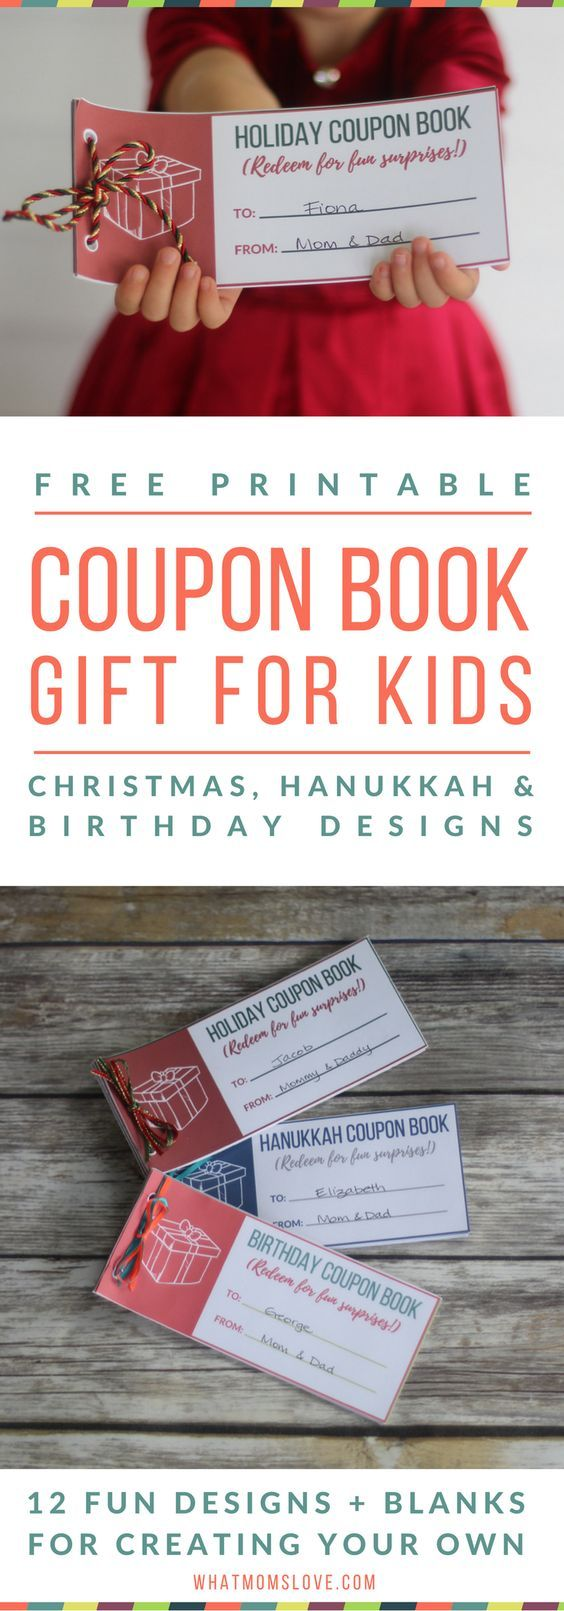 Printable Coupon Book The Perfect Stocking Stuffer For